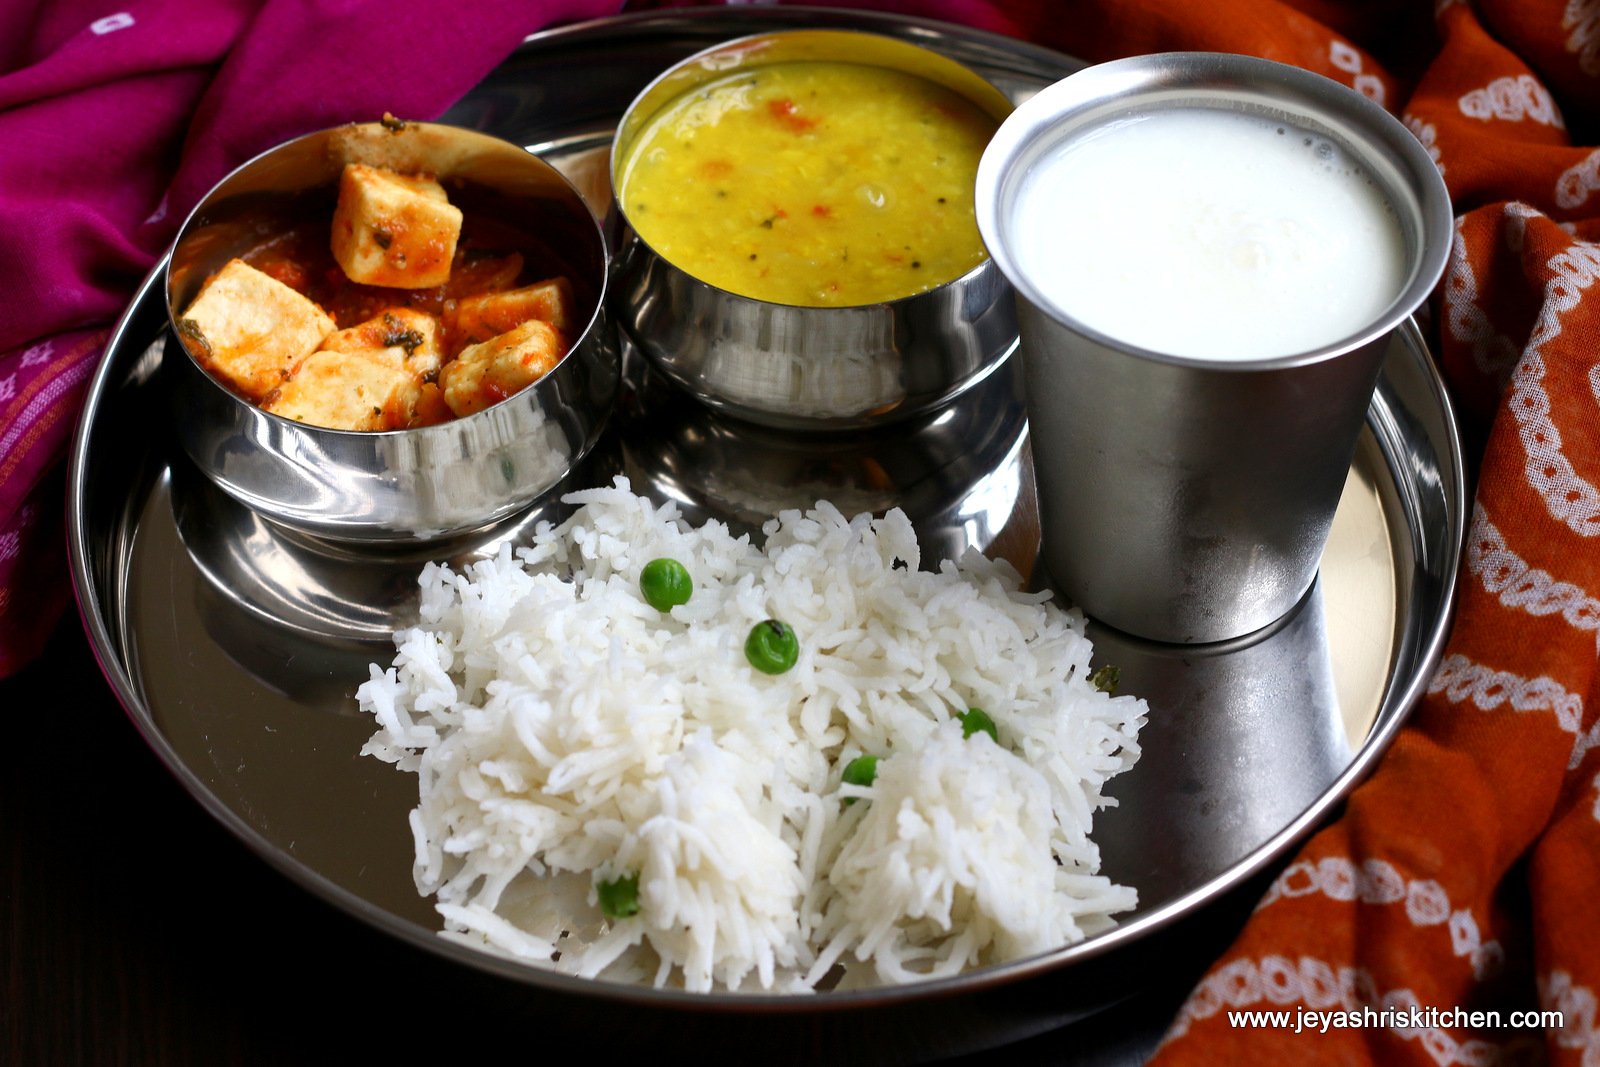 Lunch menu ideas | Jeyashri\'s Kitchen